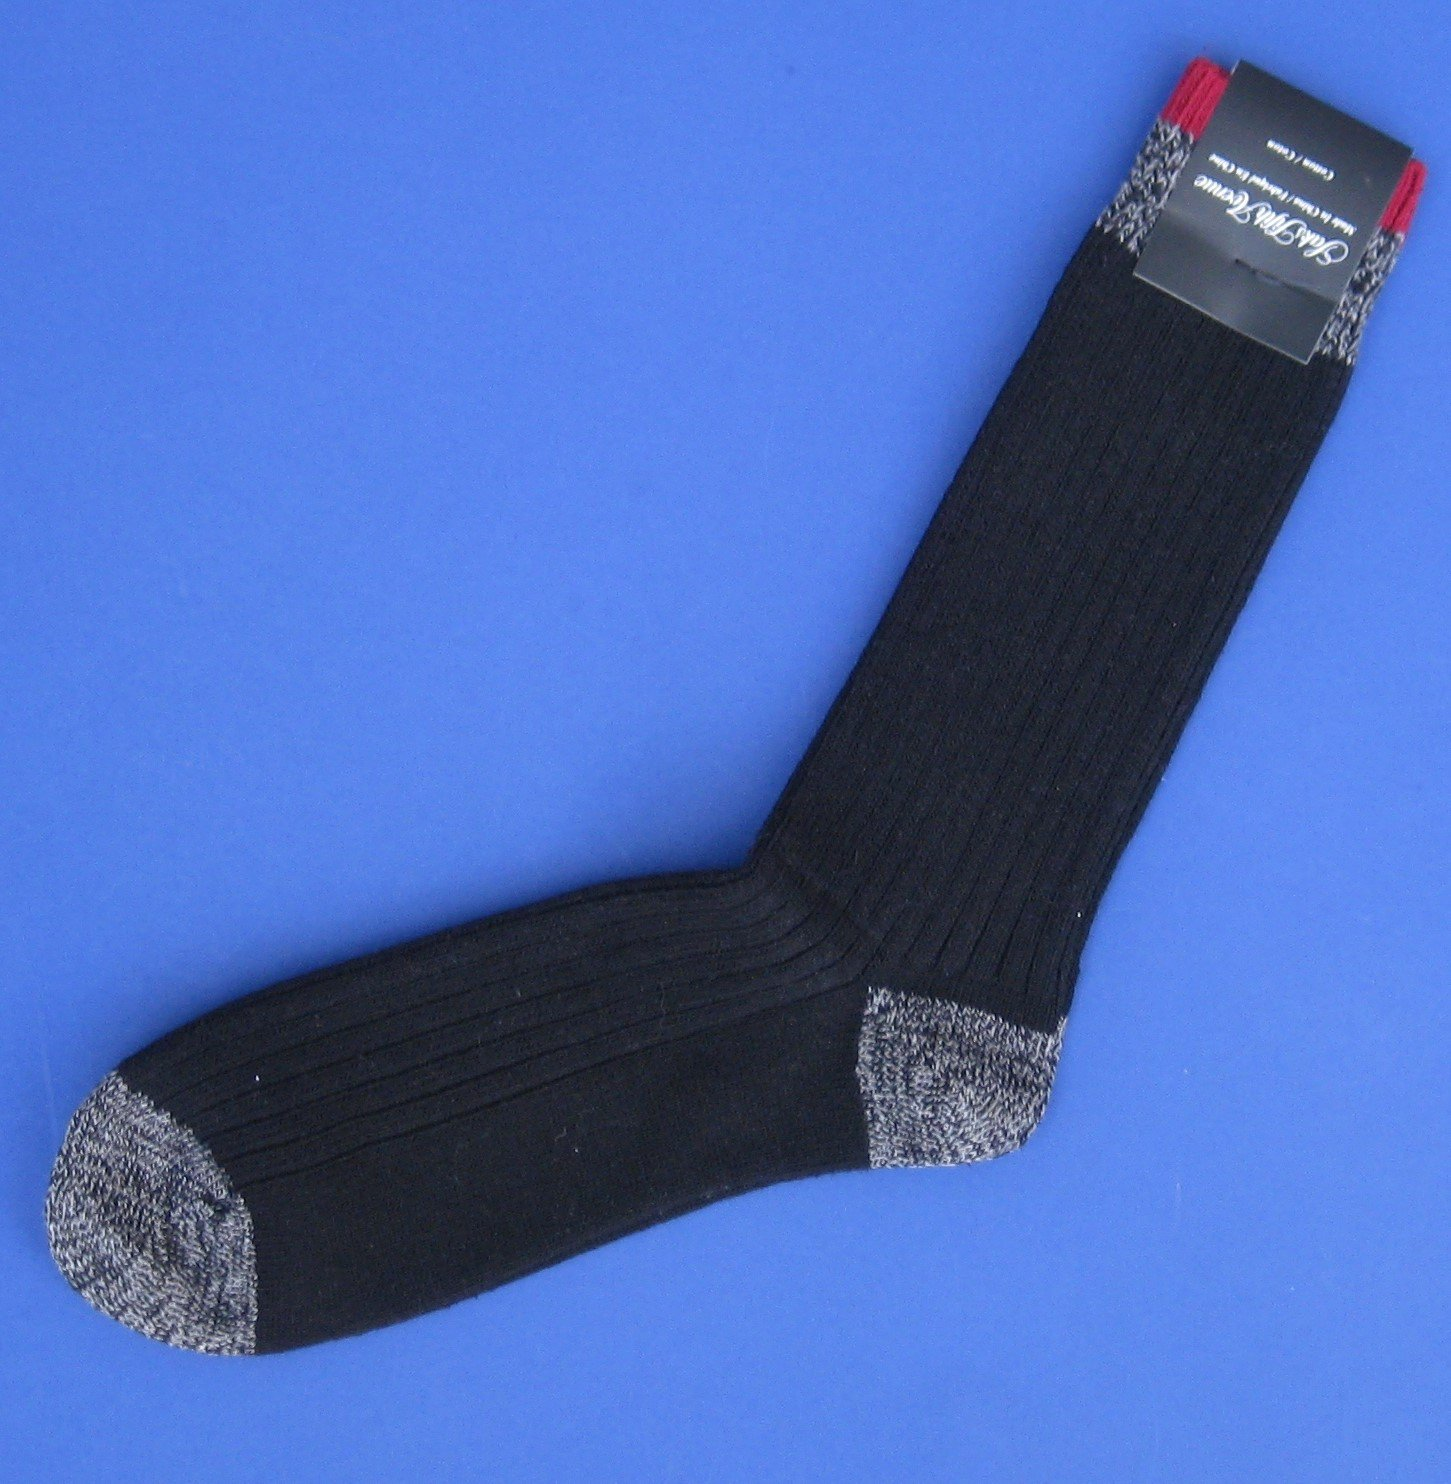 NWT Saks Fifth Avenue Men's Heavyweight Black Cotton Blend Socks